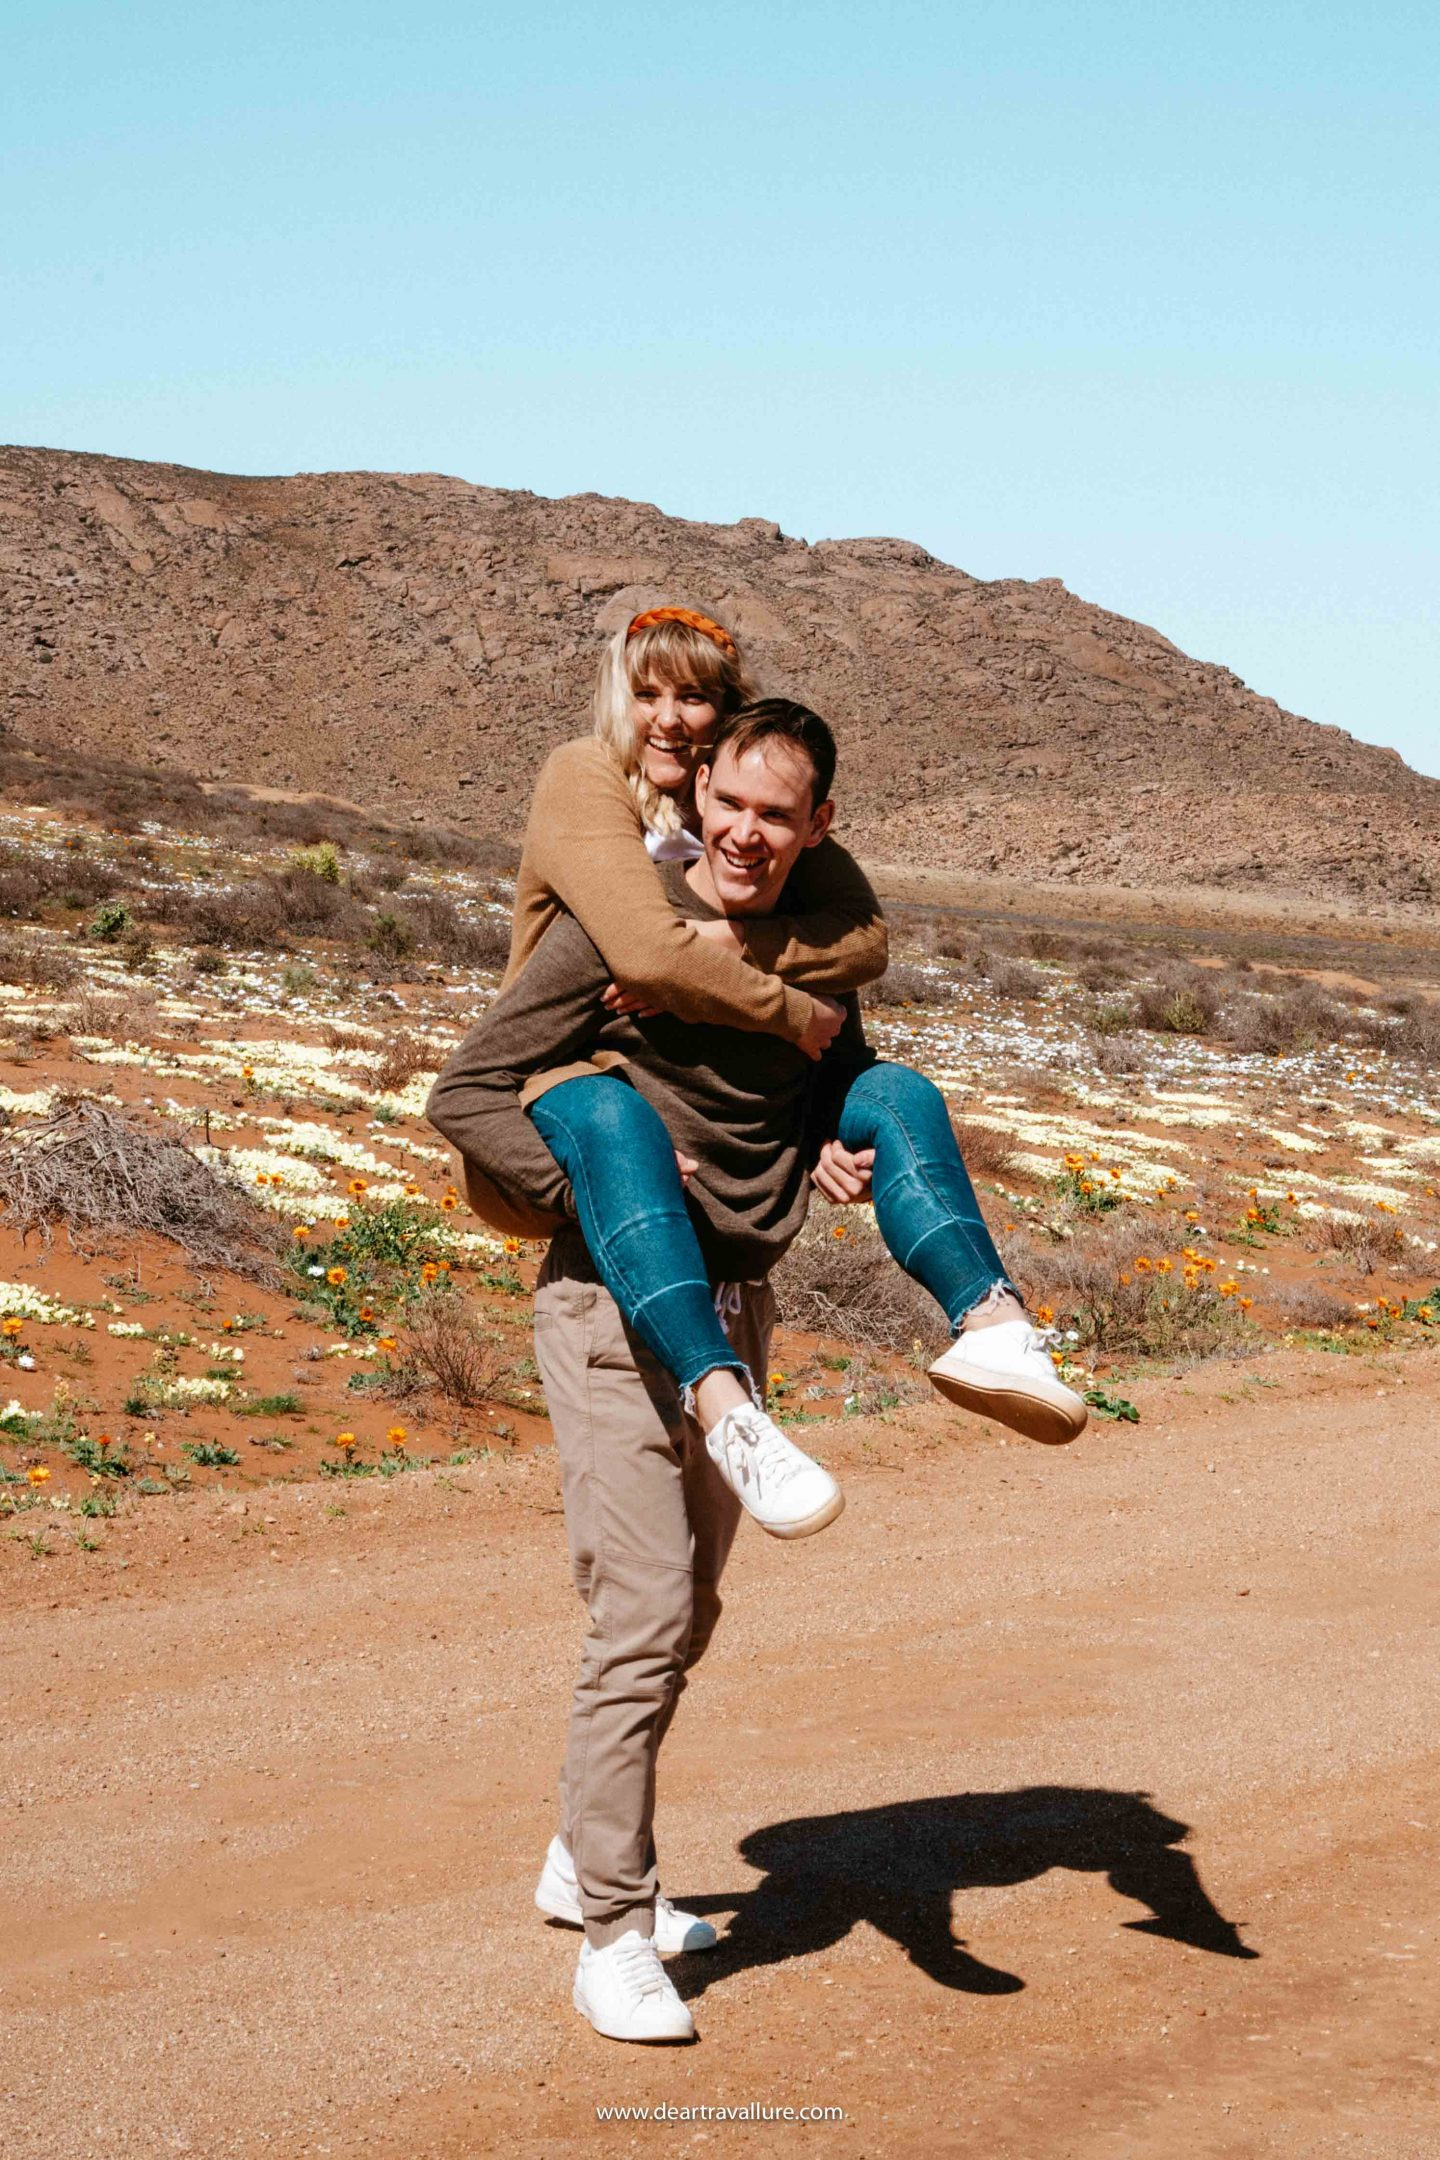 Byron giving Tammy a Piggyback Ride through the Namaqualand Flowers